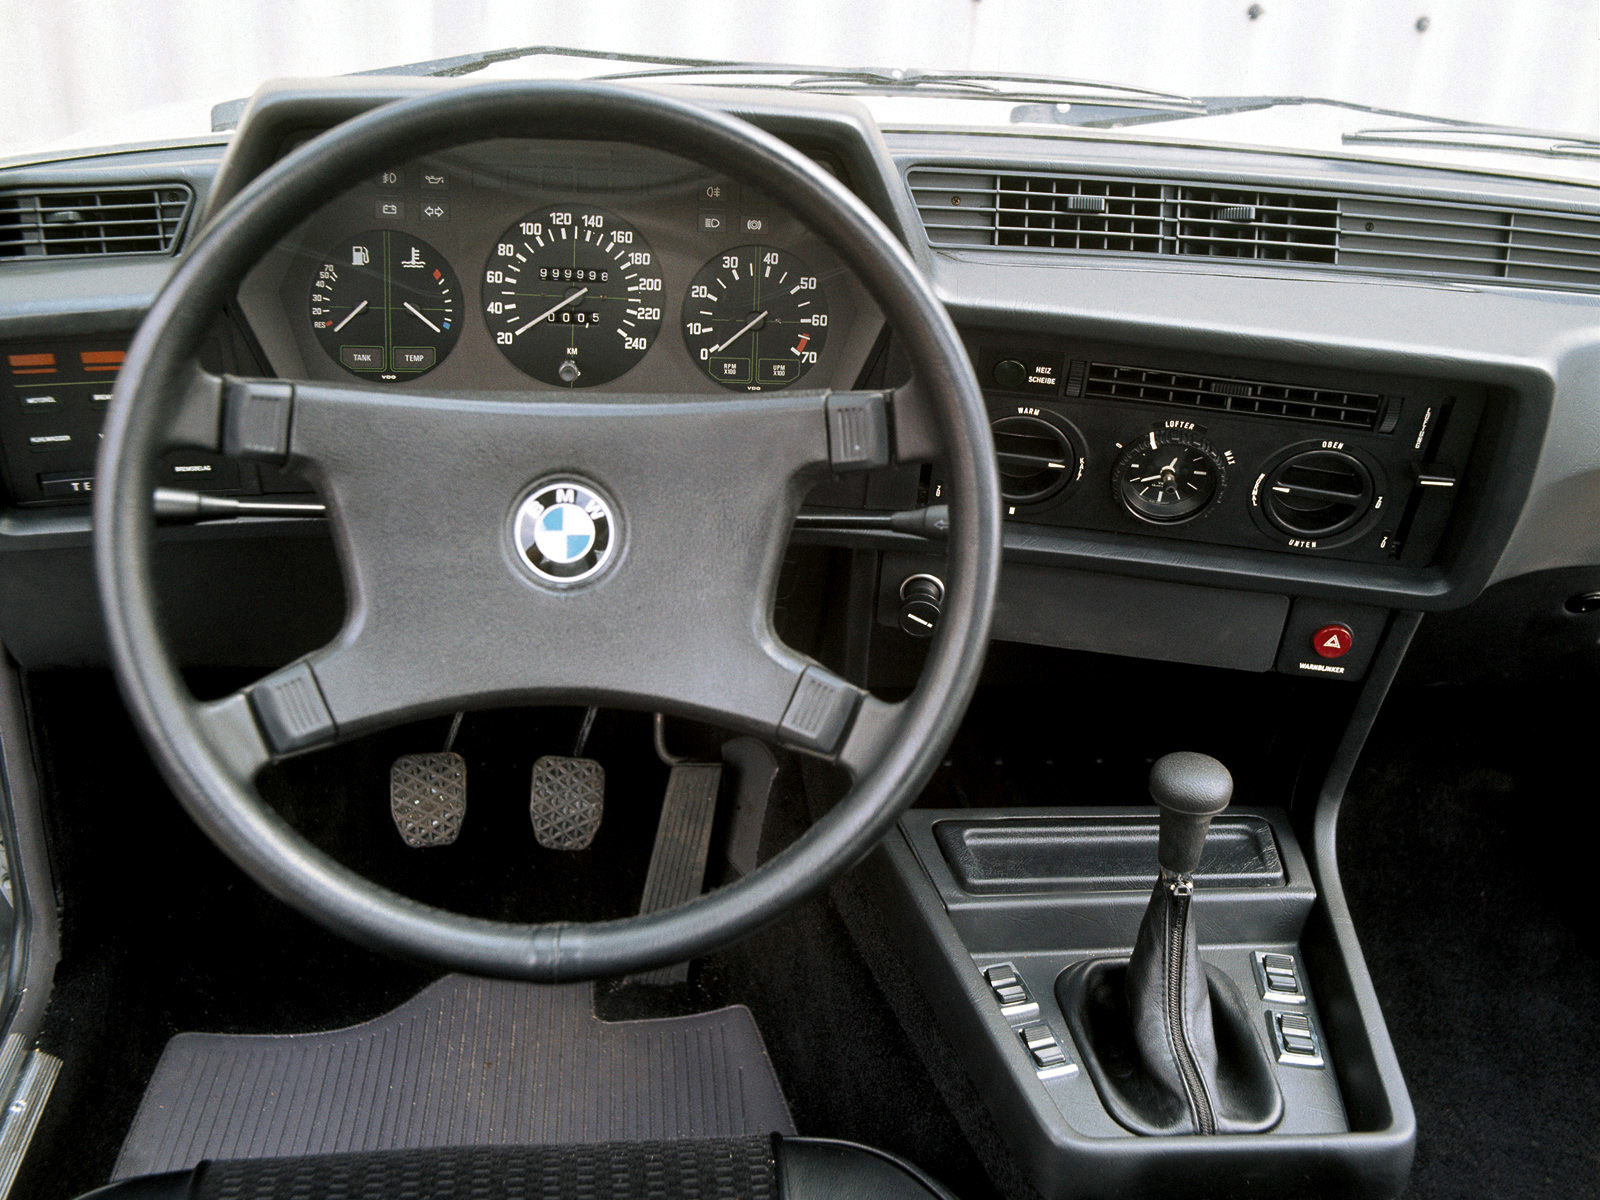 Car in pictures - car photo gallery » BMW 6-Series 635csi E24 1978-1987 Photo 01